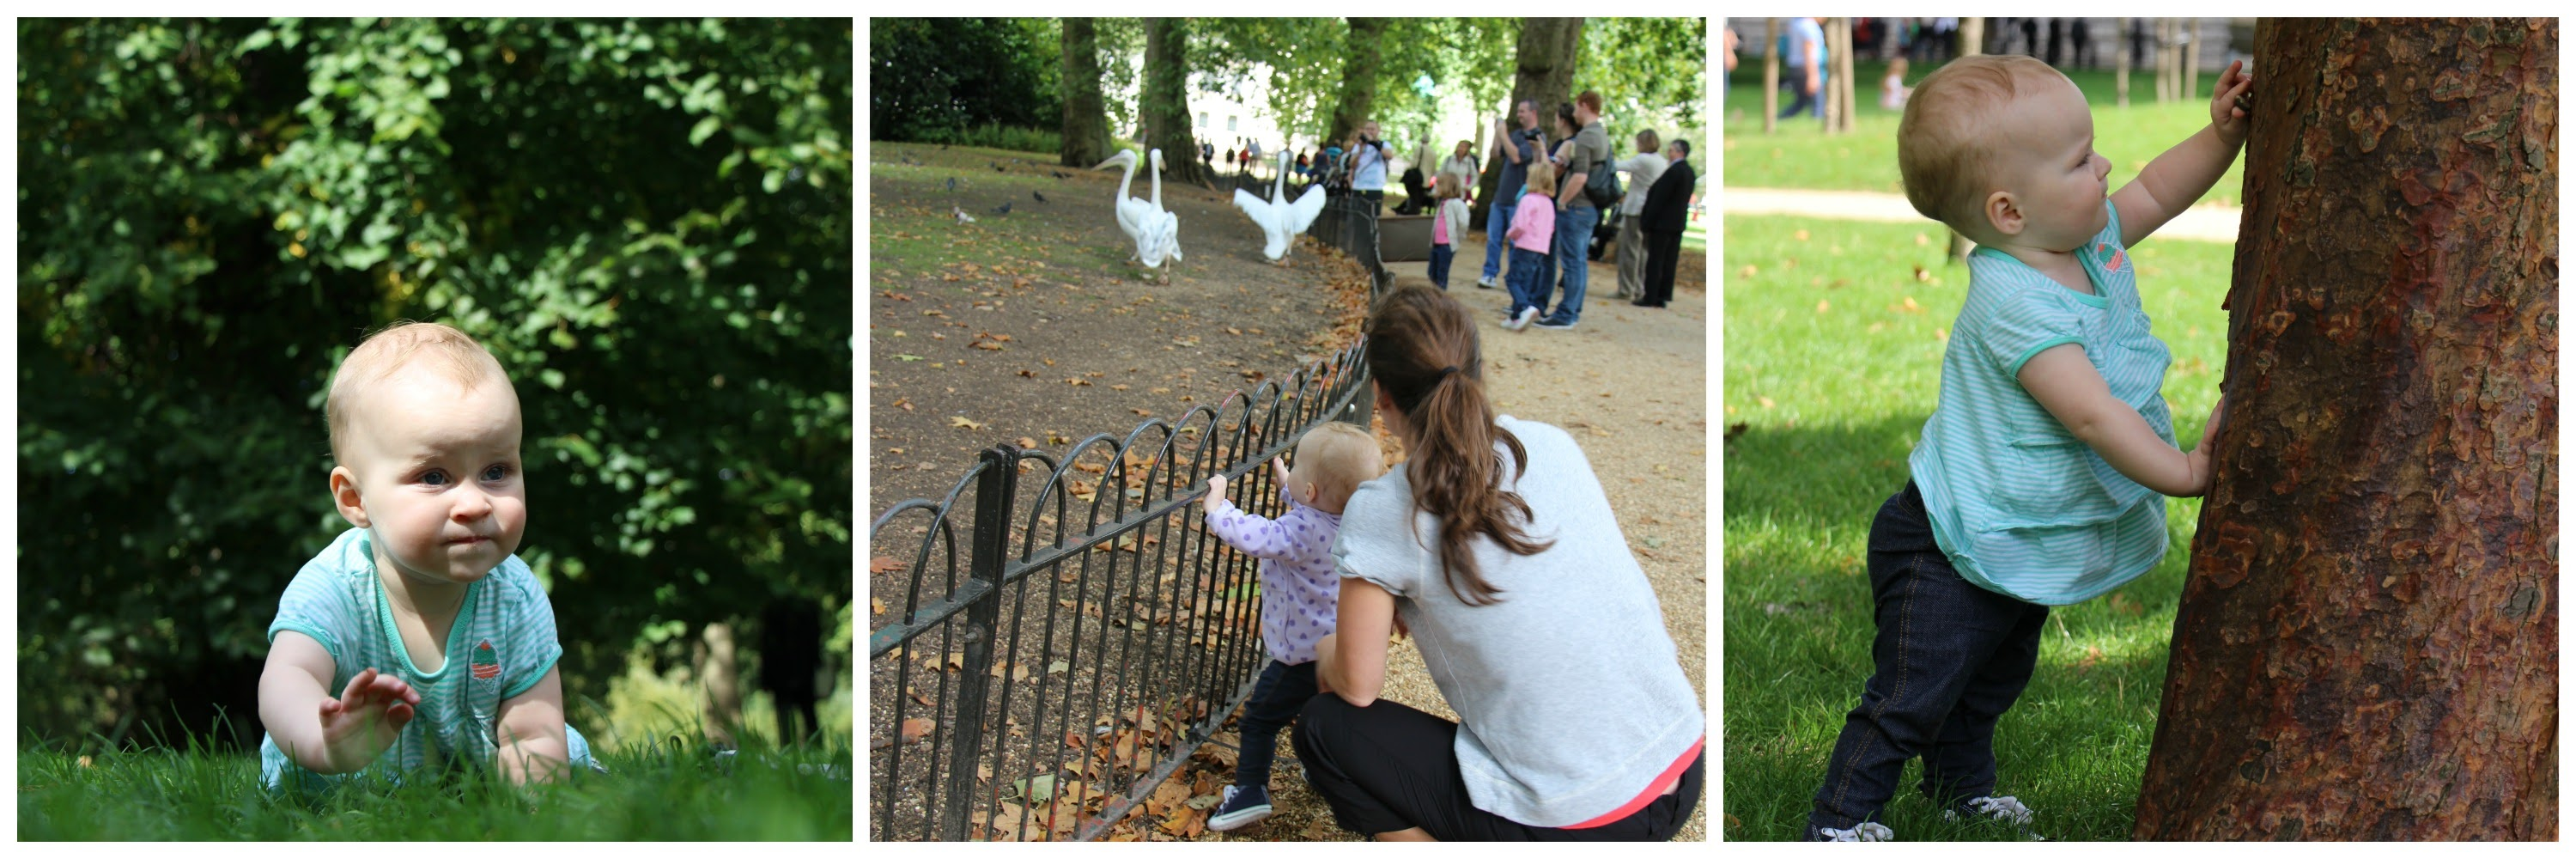 Baby Can Travel - London Playgrounds and Parks for Babies or Toddlers - St James's Park